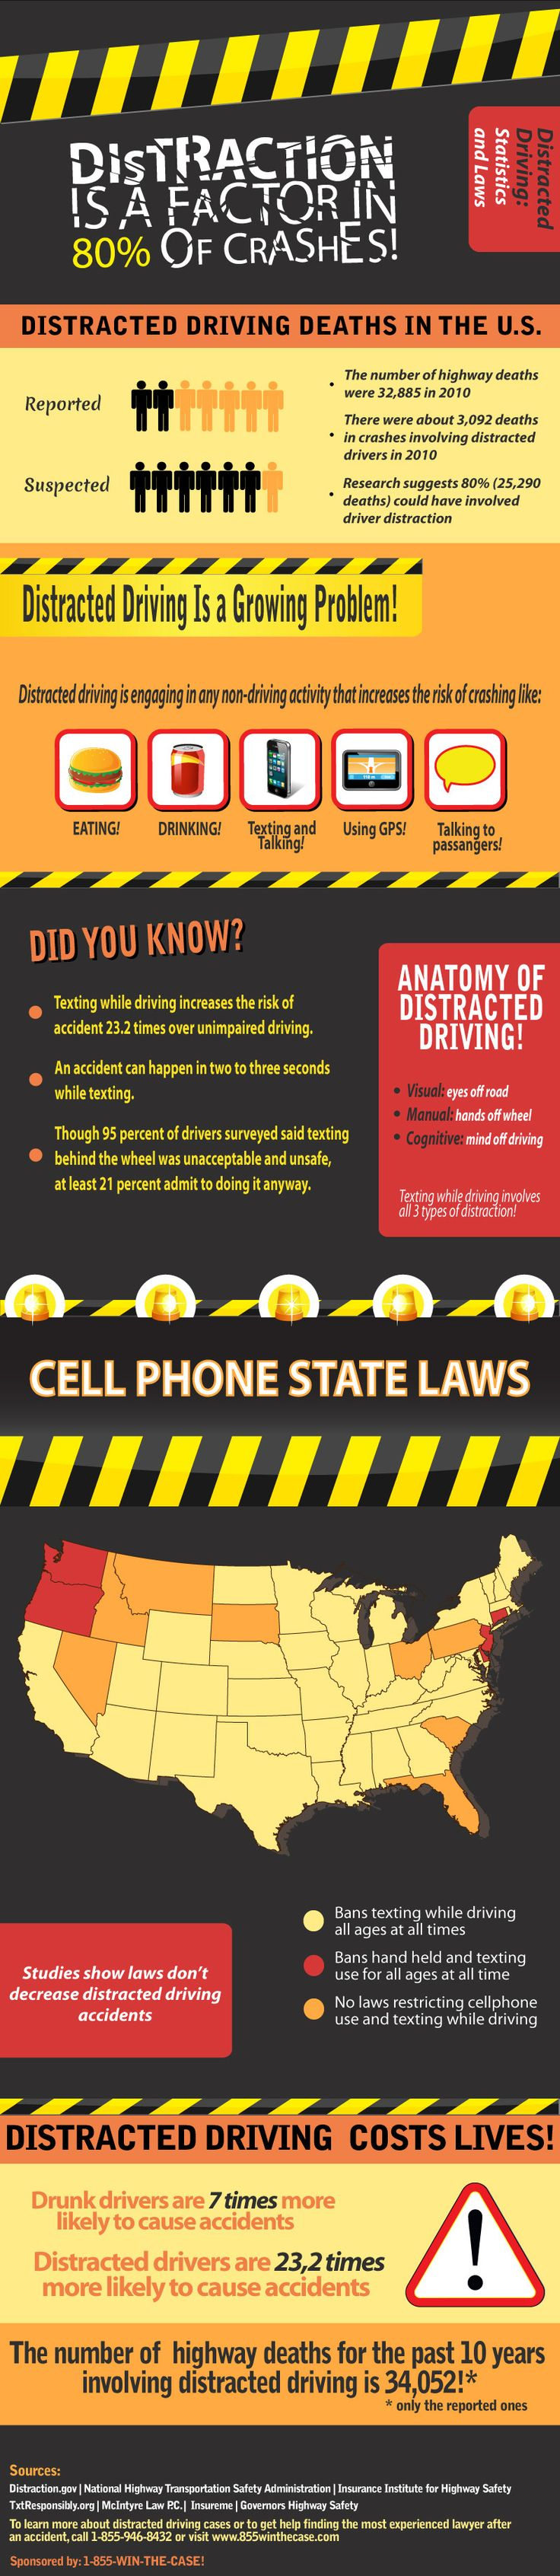 Distracted driving: Statistics and Laws